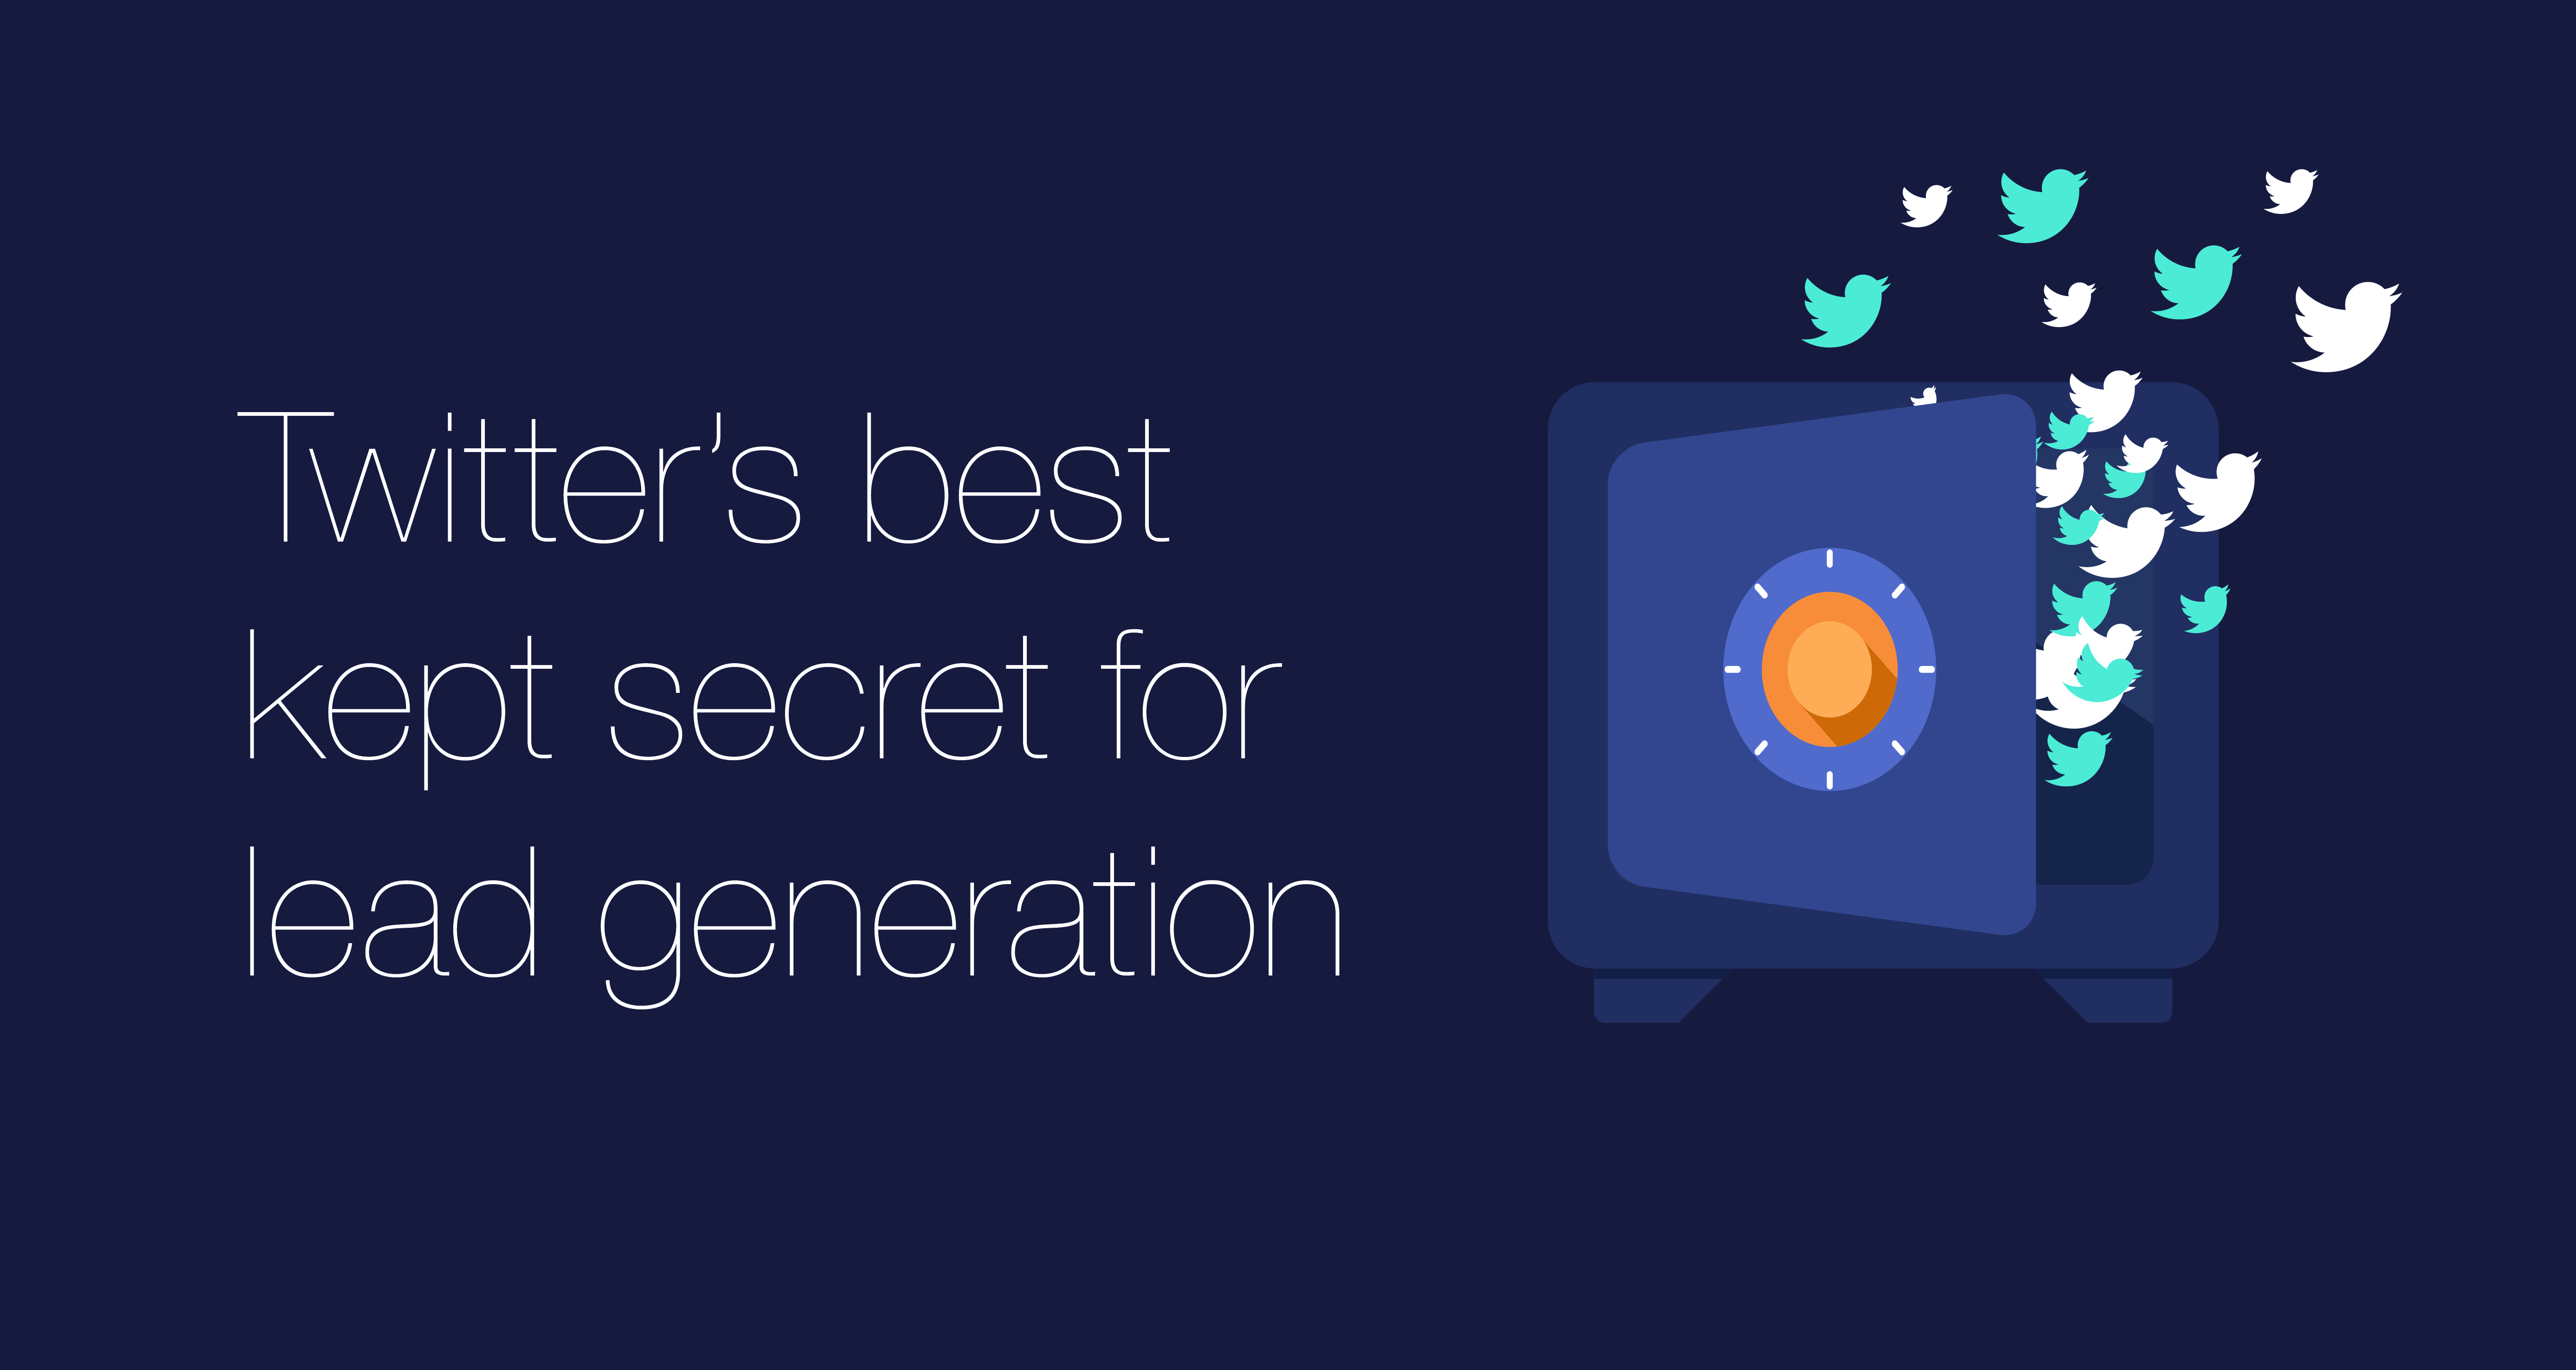 Twitter search for lead generation